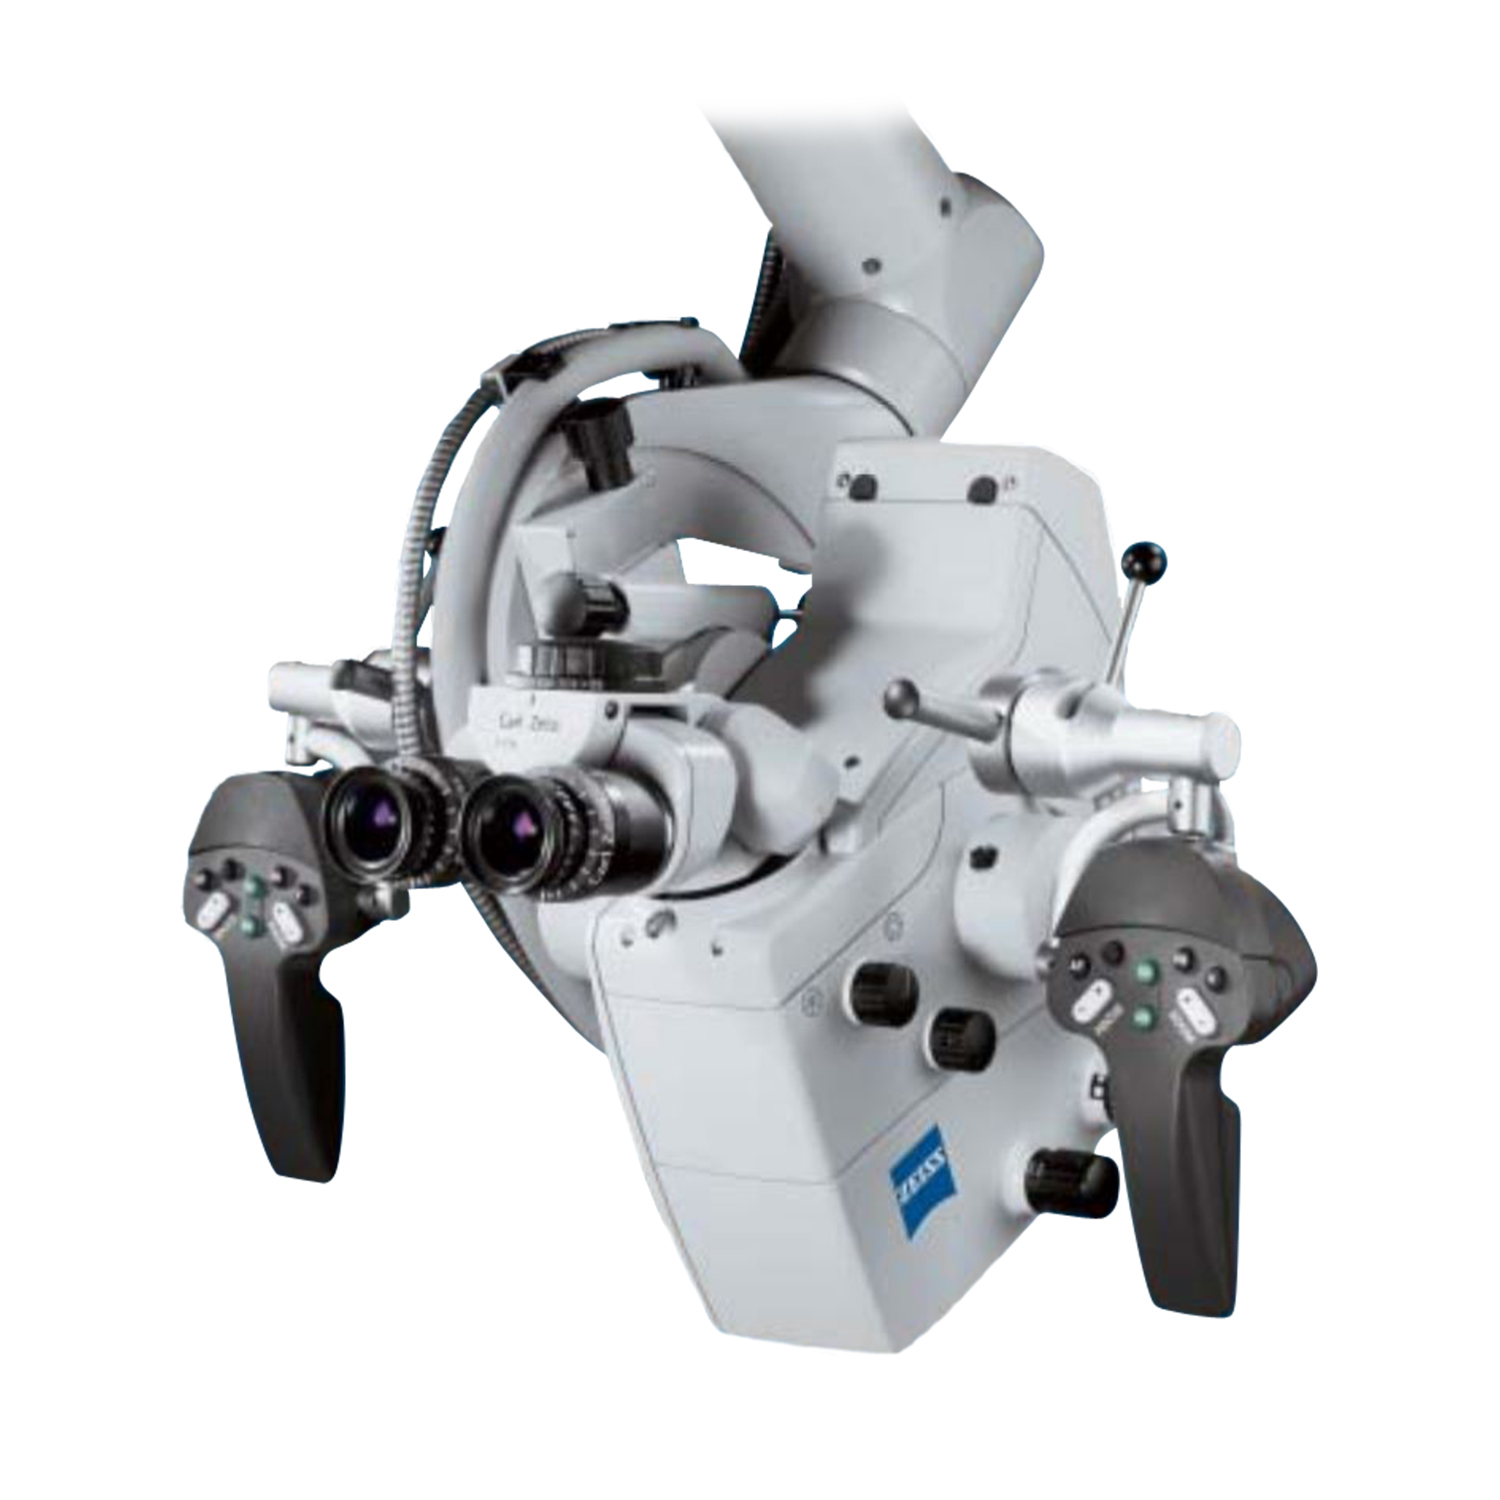 Zeiss Opmi Neuro/NC4 Surgical Microscope